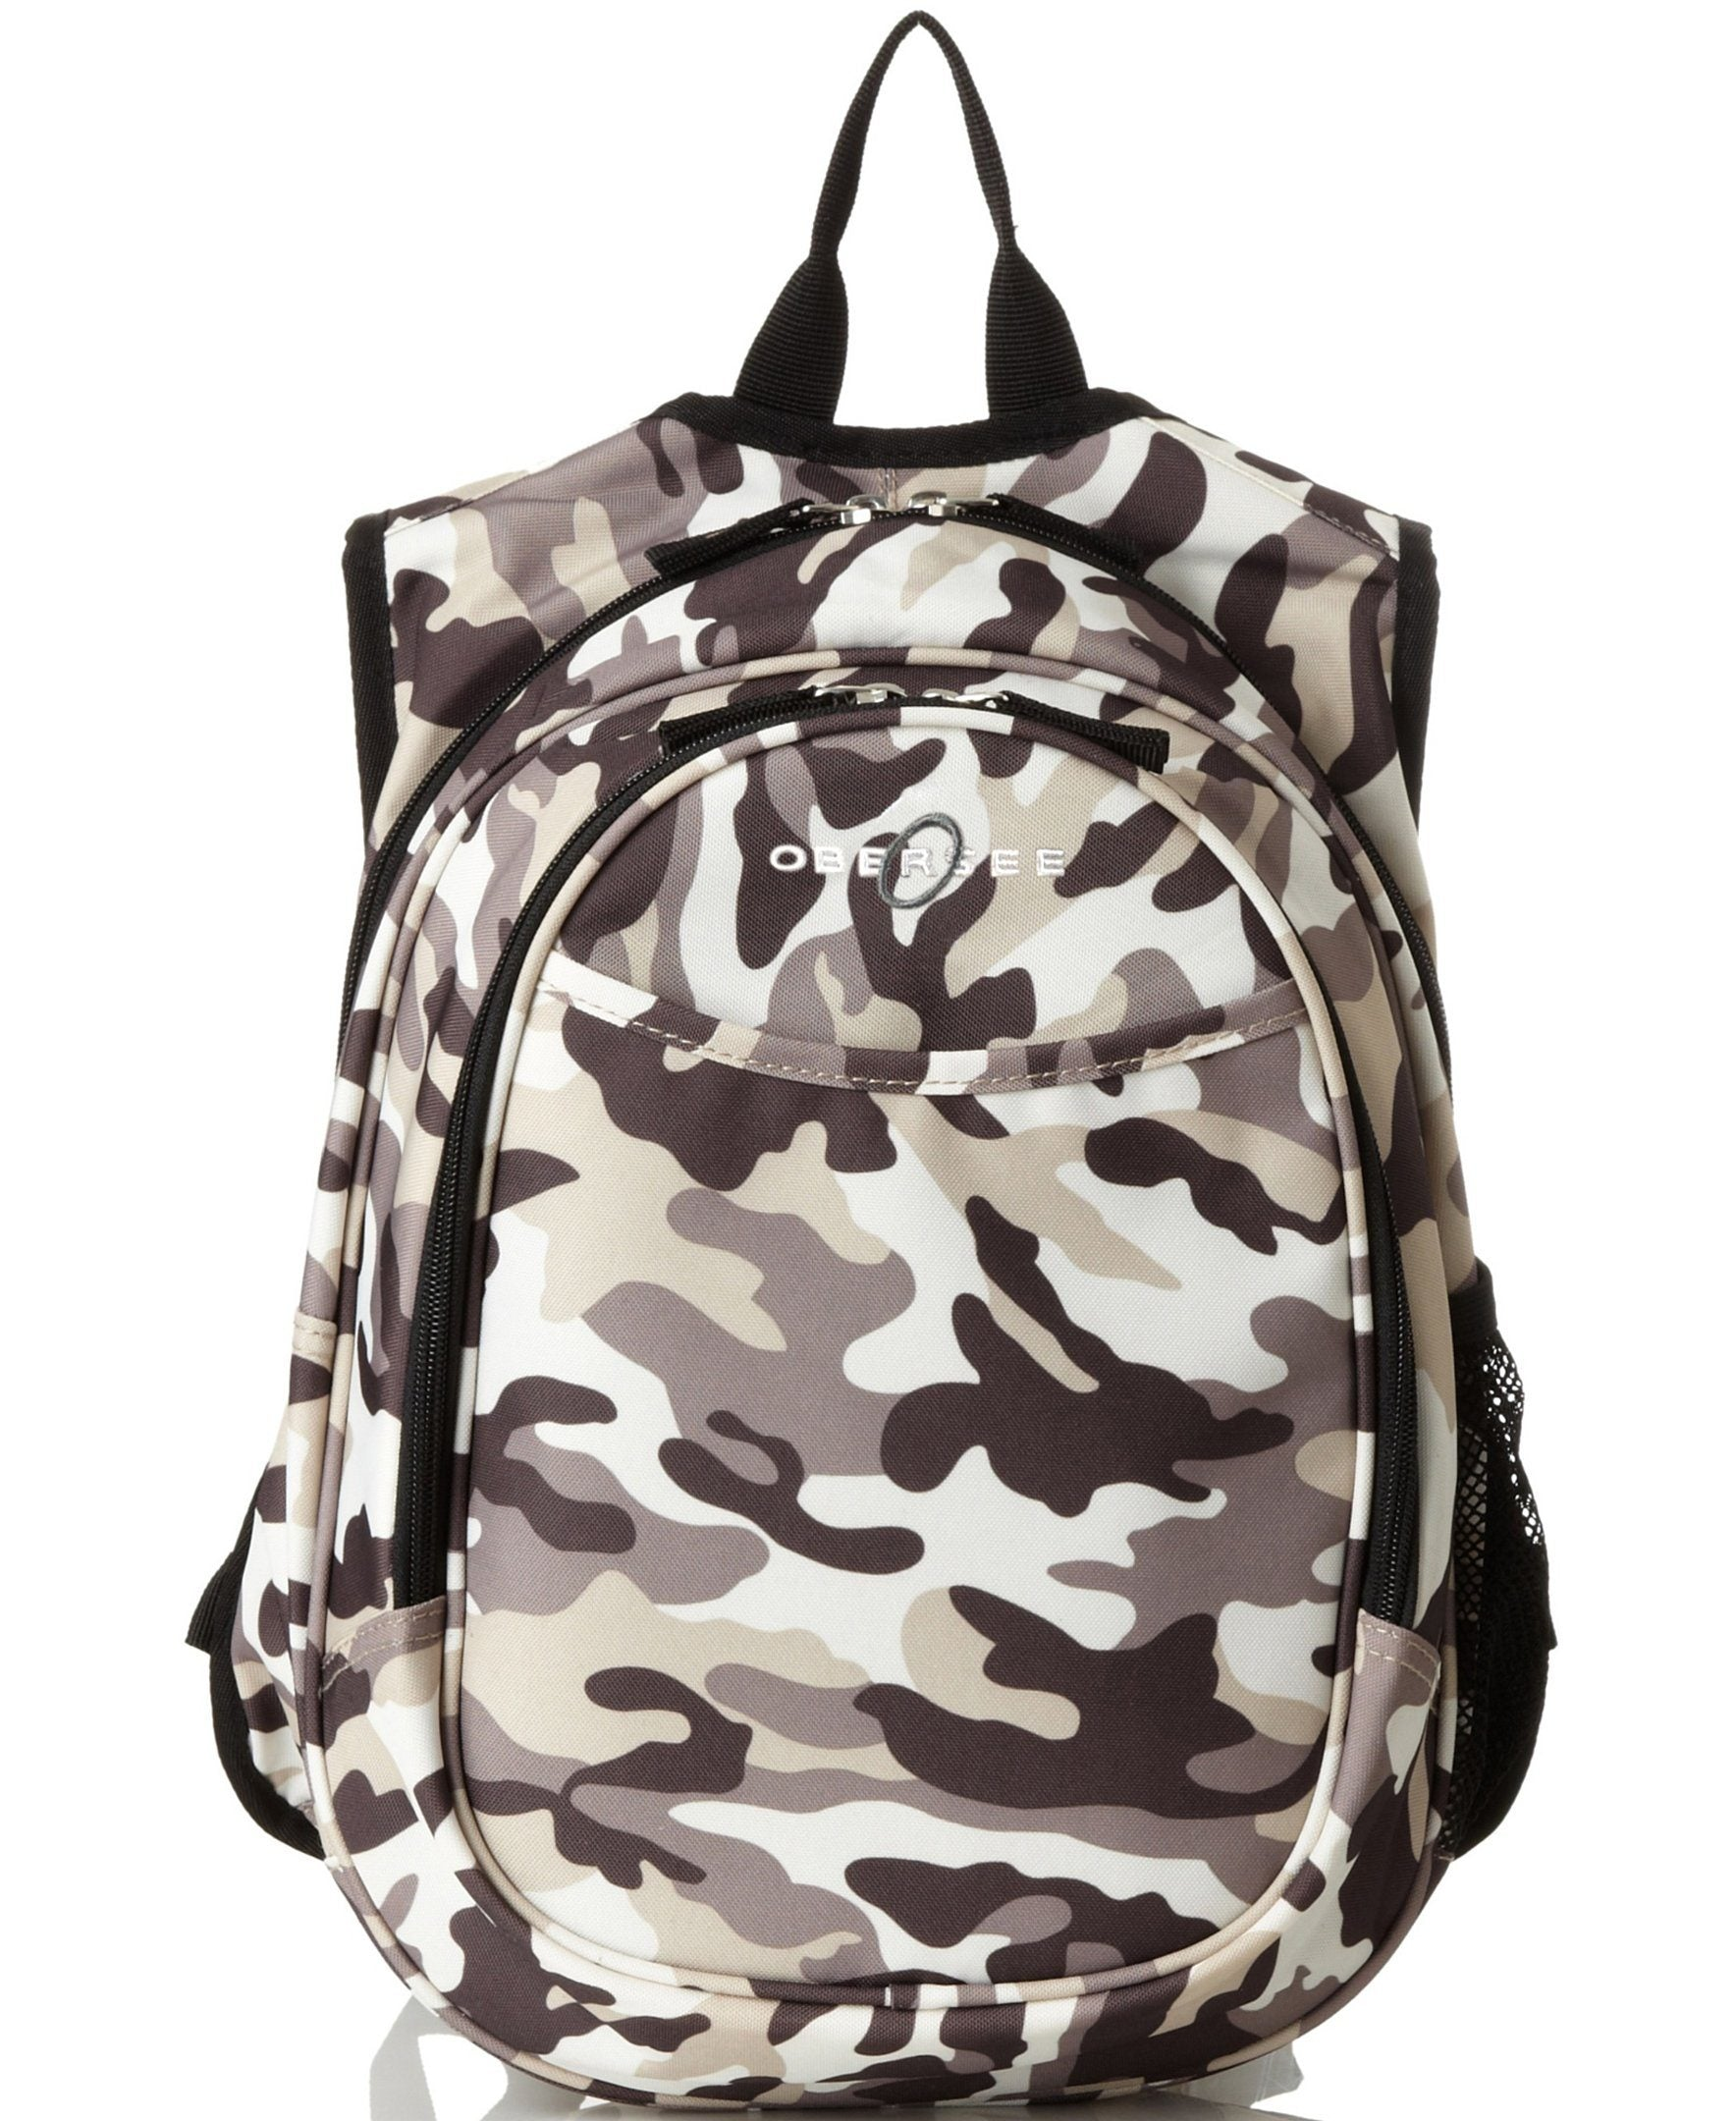 Obersee Kids Pre-School All-In-One Backpack With Cooler - Camo